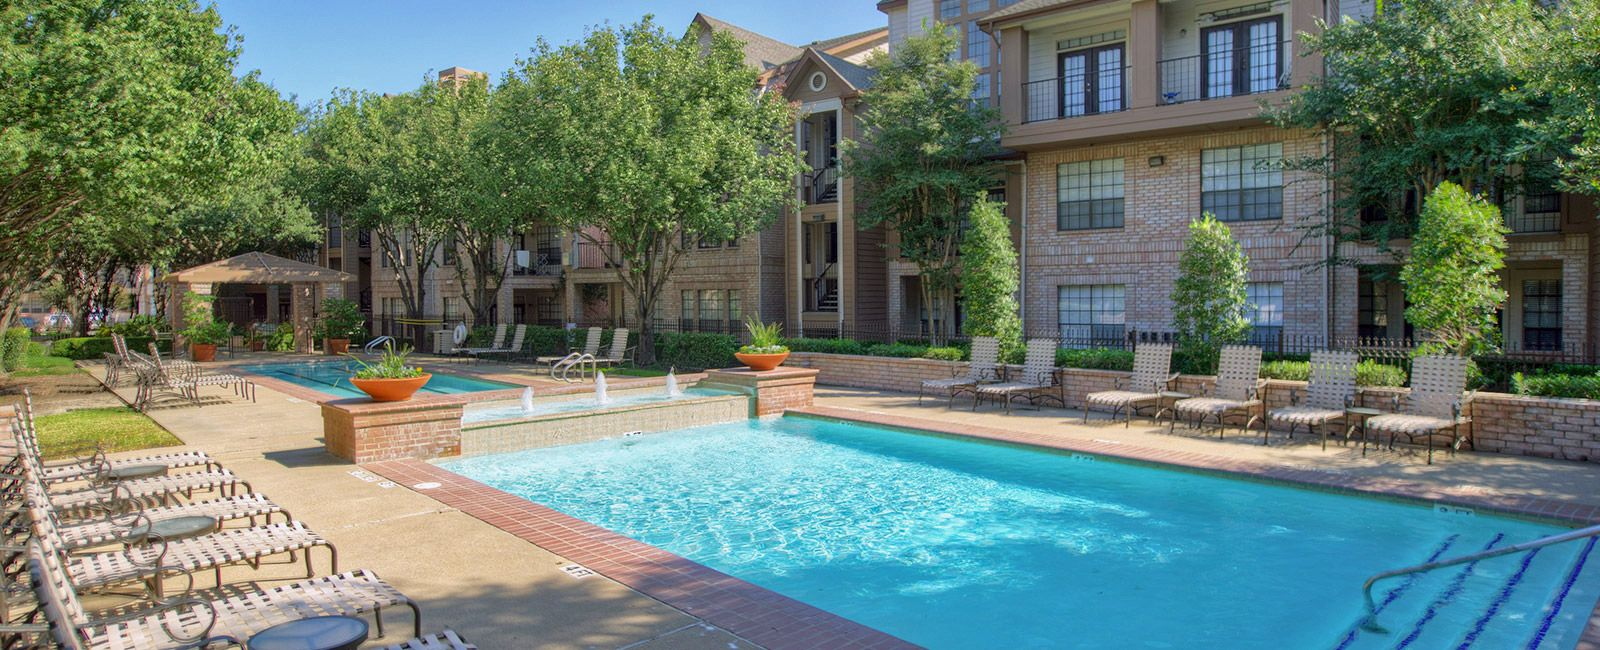 Inner loop Houston, TX Apartments For Rent Greenbriar